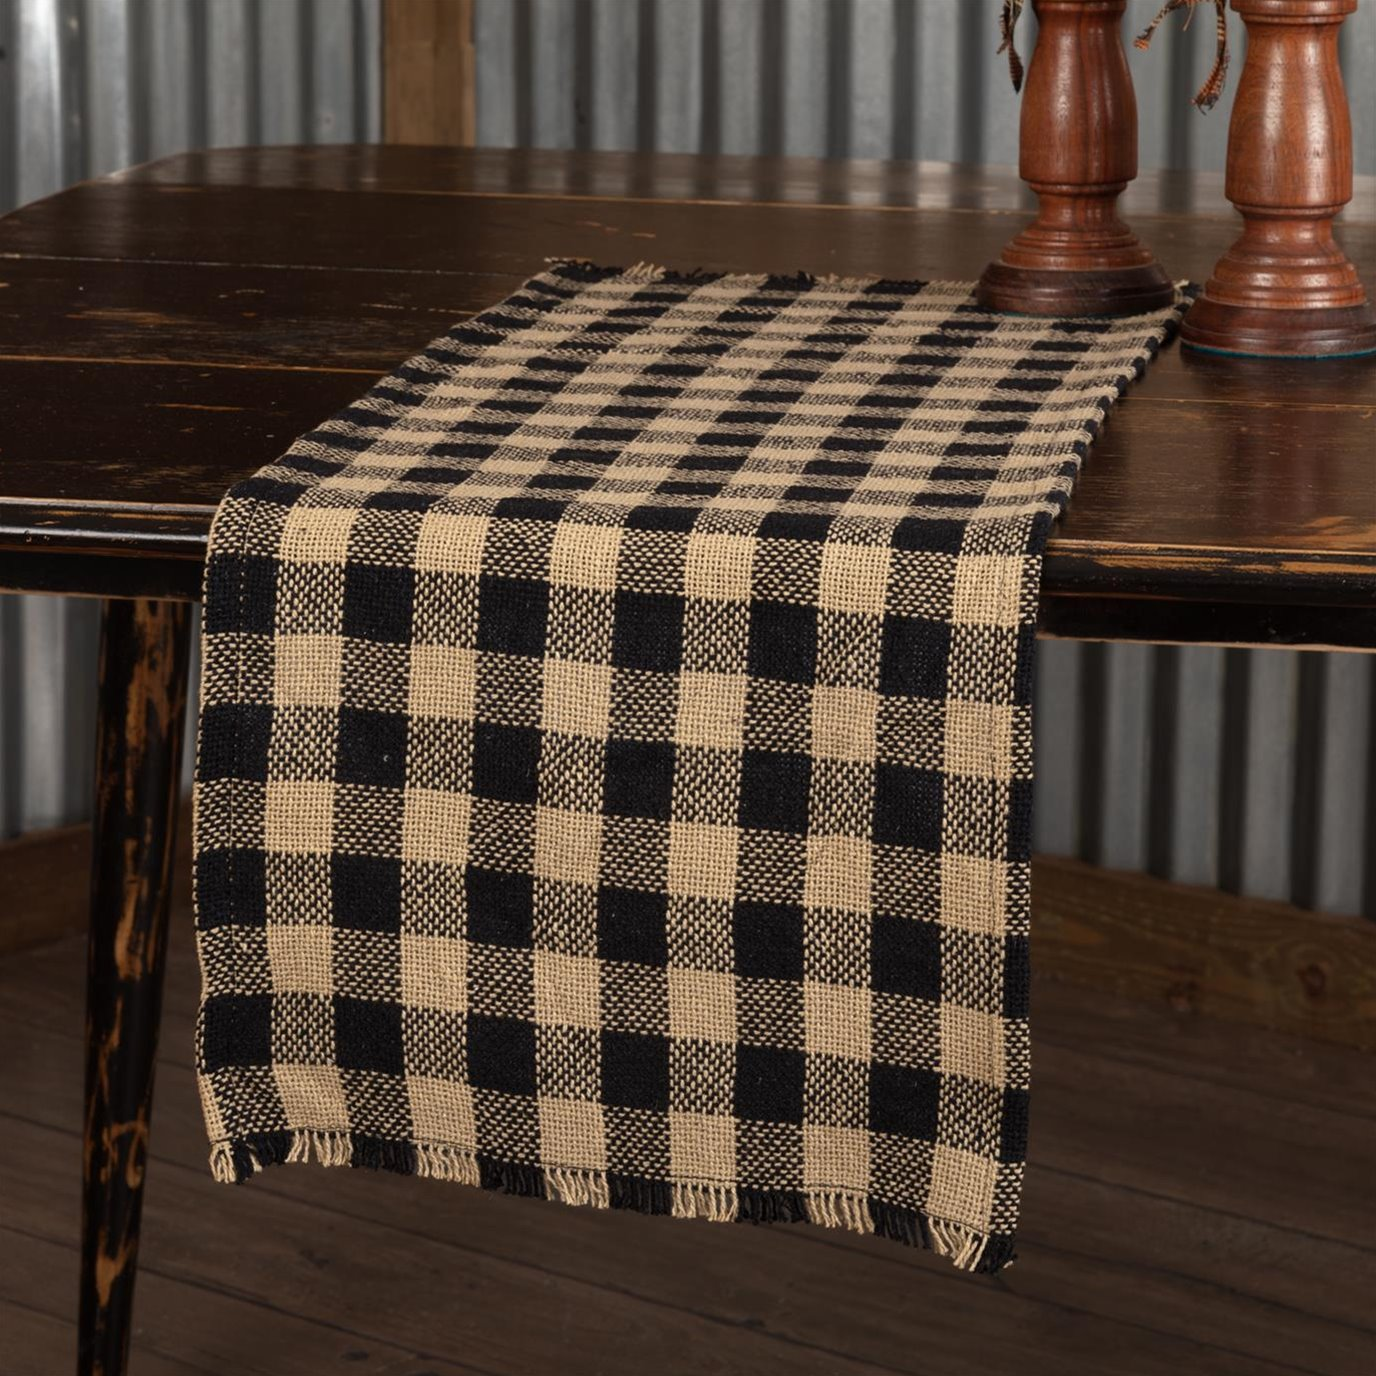 Burlap Black Check Runner Fringed 13x48